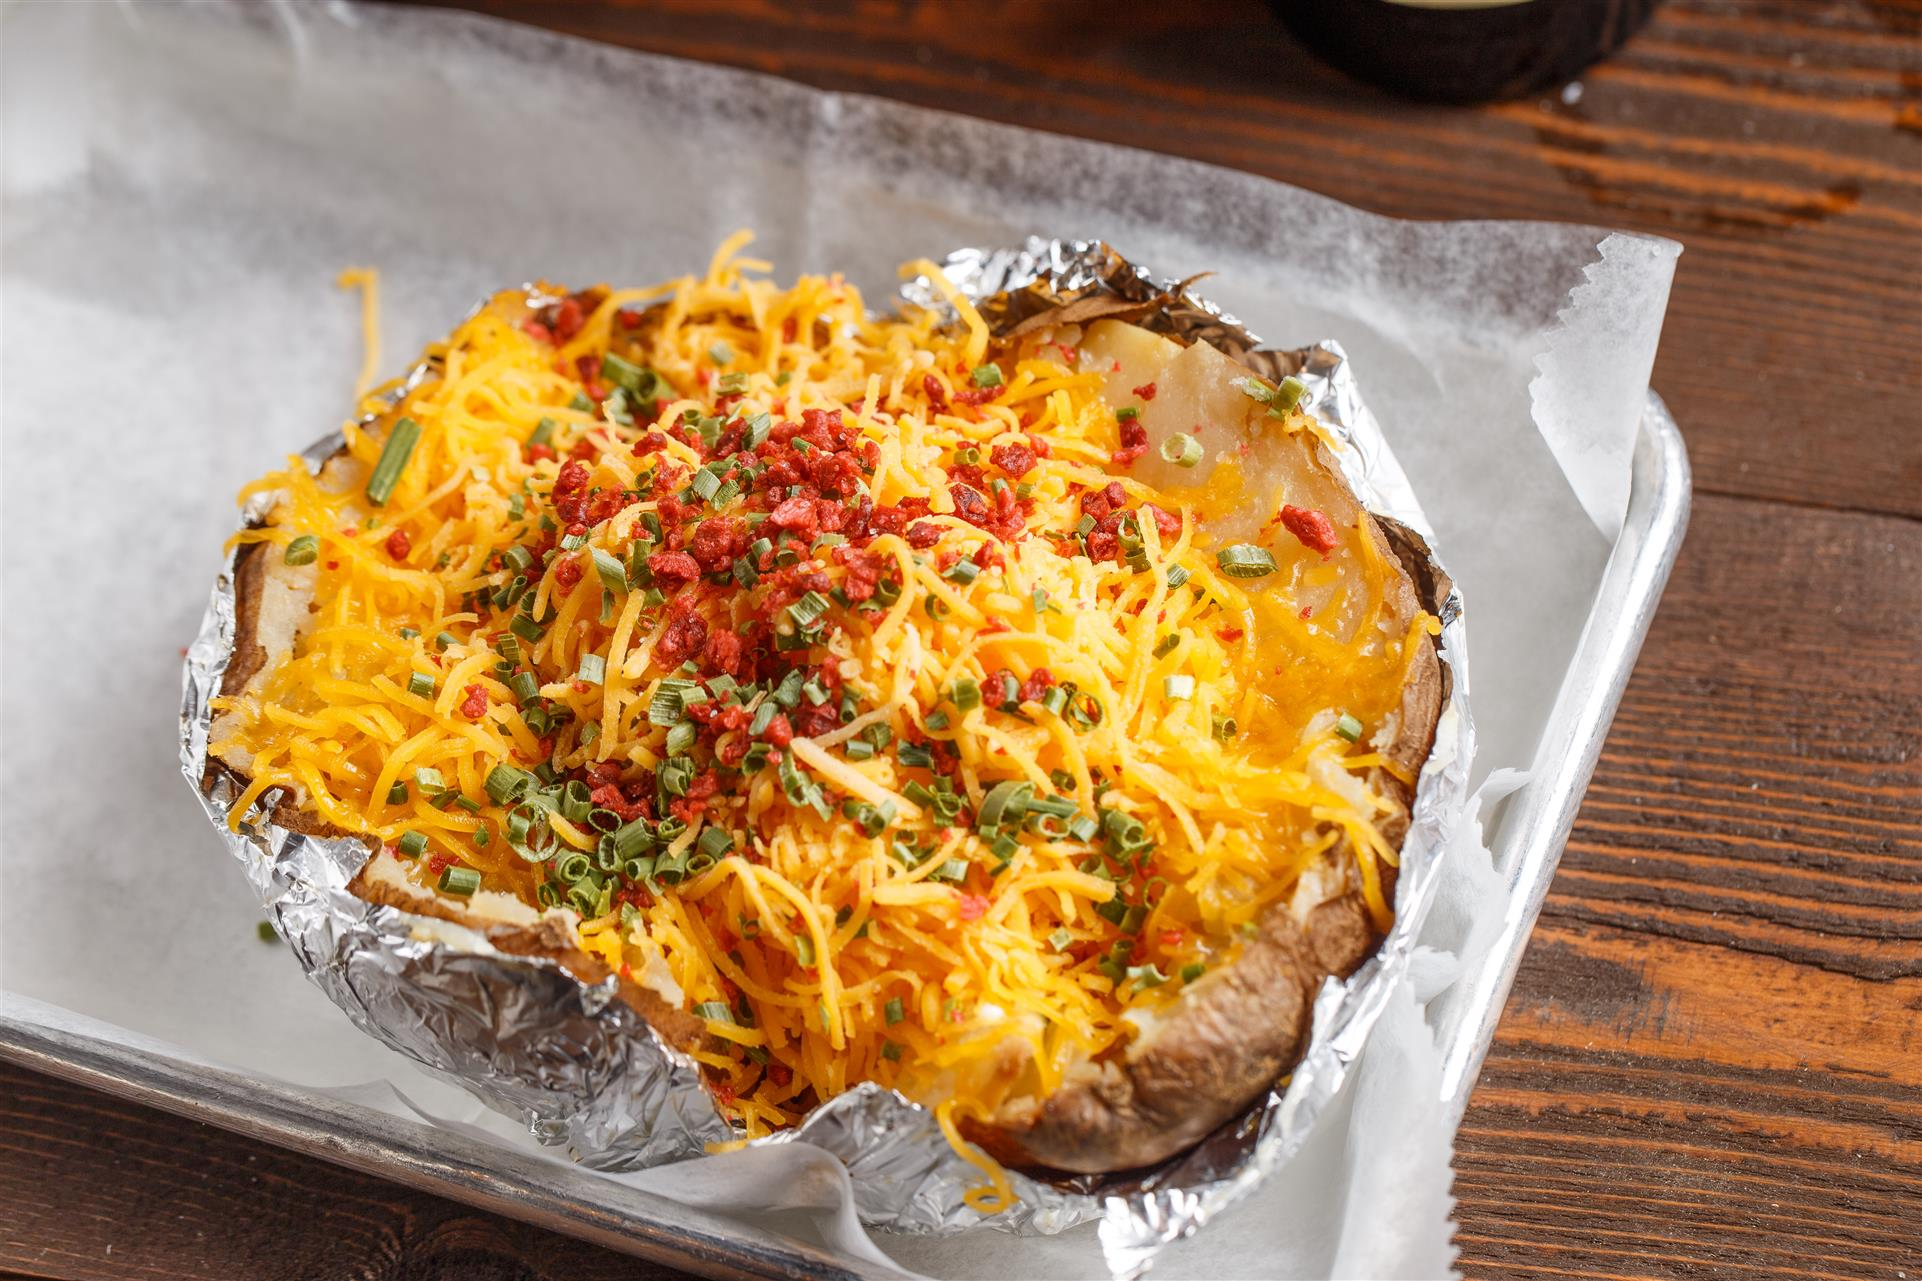 A baked potato covered with cheese, bacon bits, and scallions